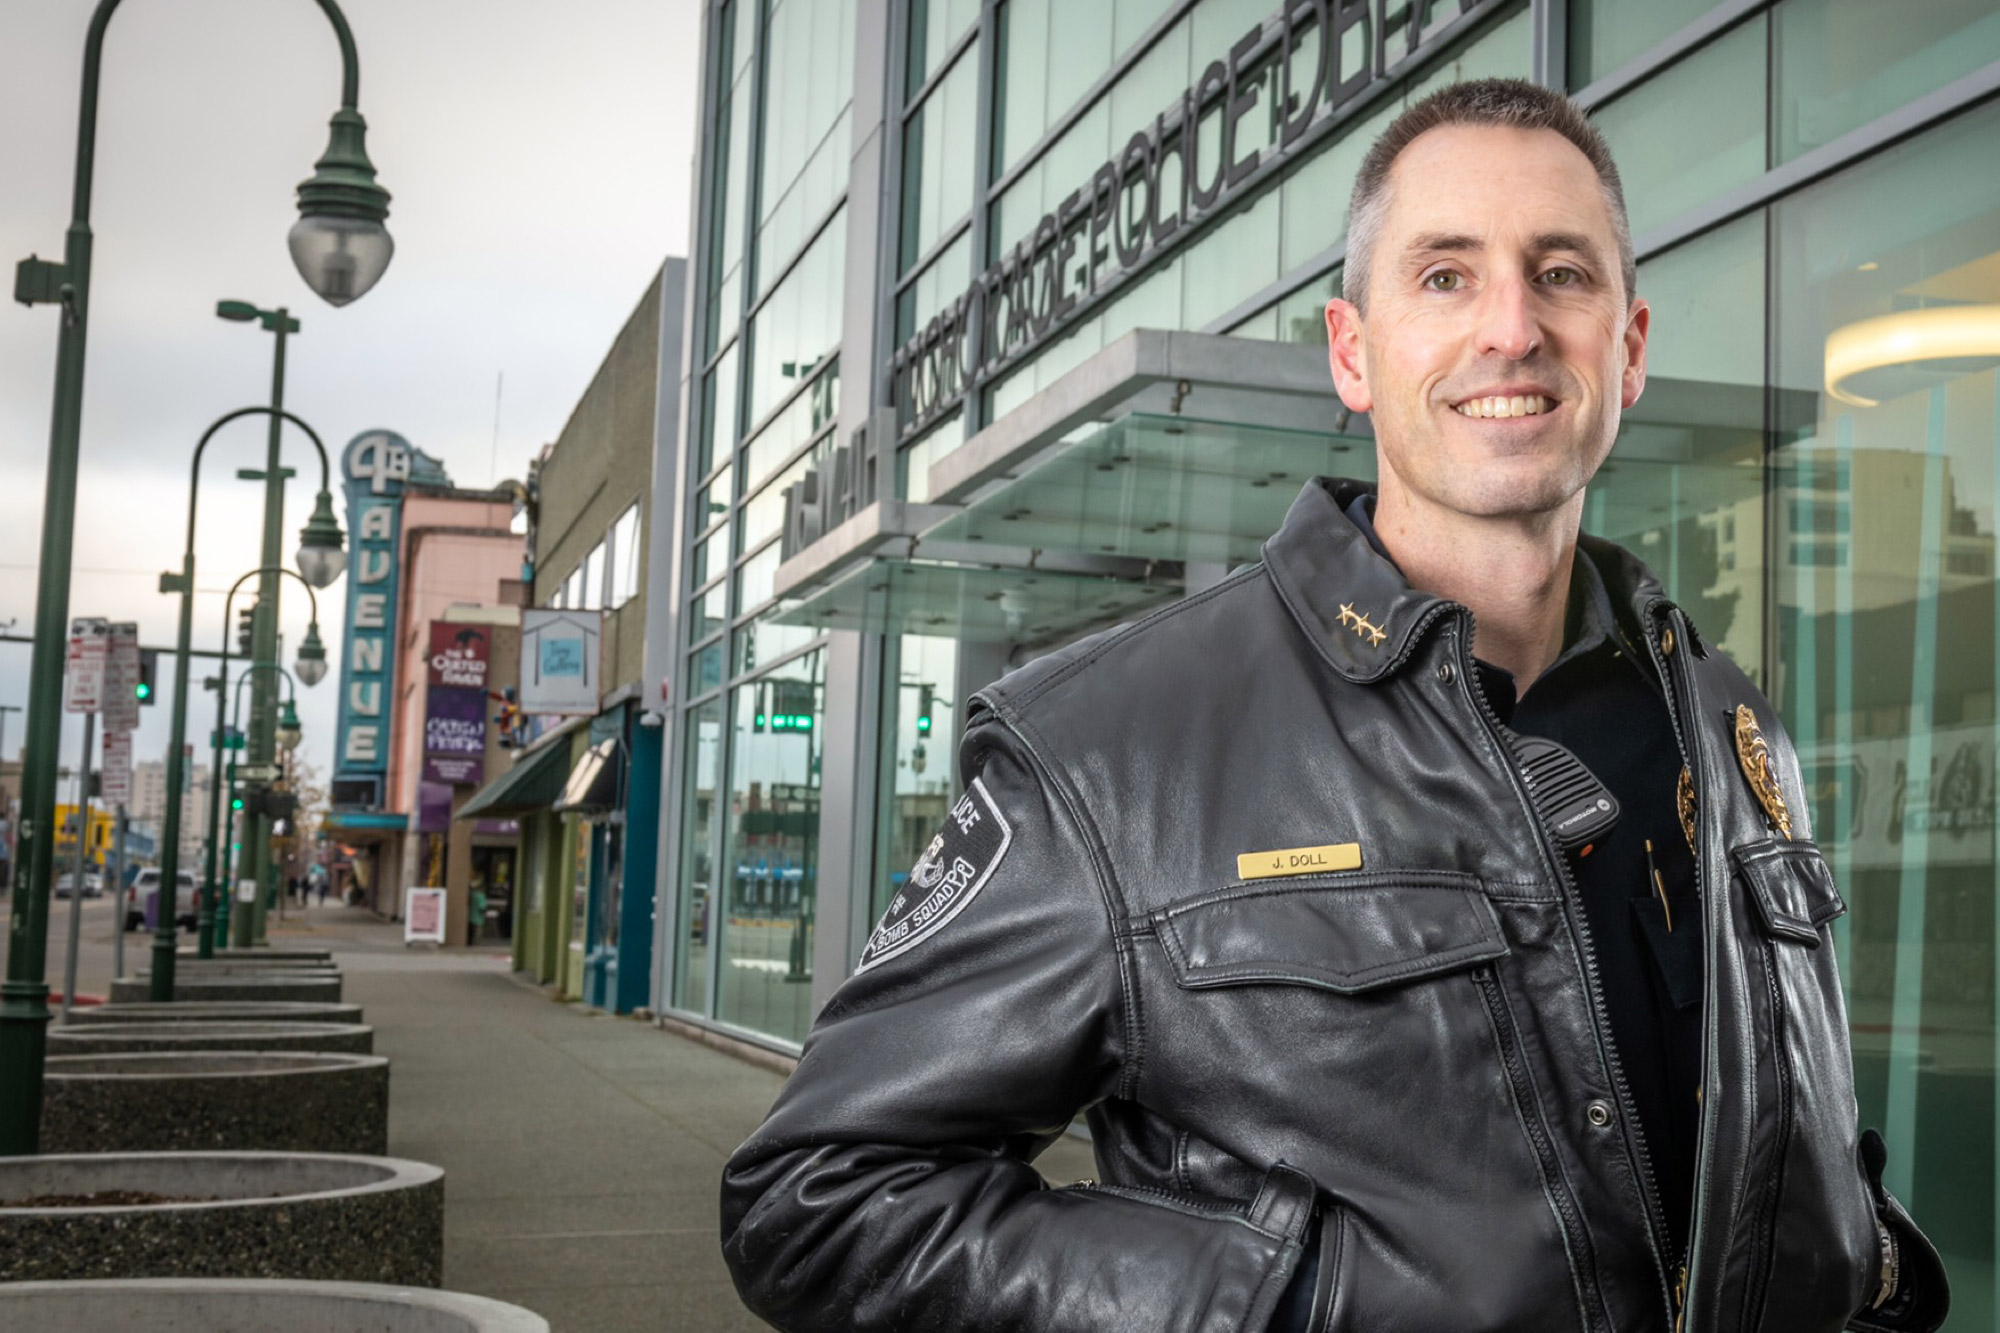 Economics alumnus and Anchorage Police Department Chief Justin Doll